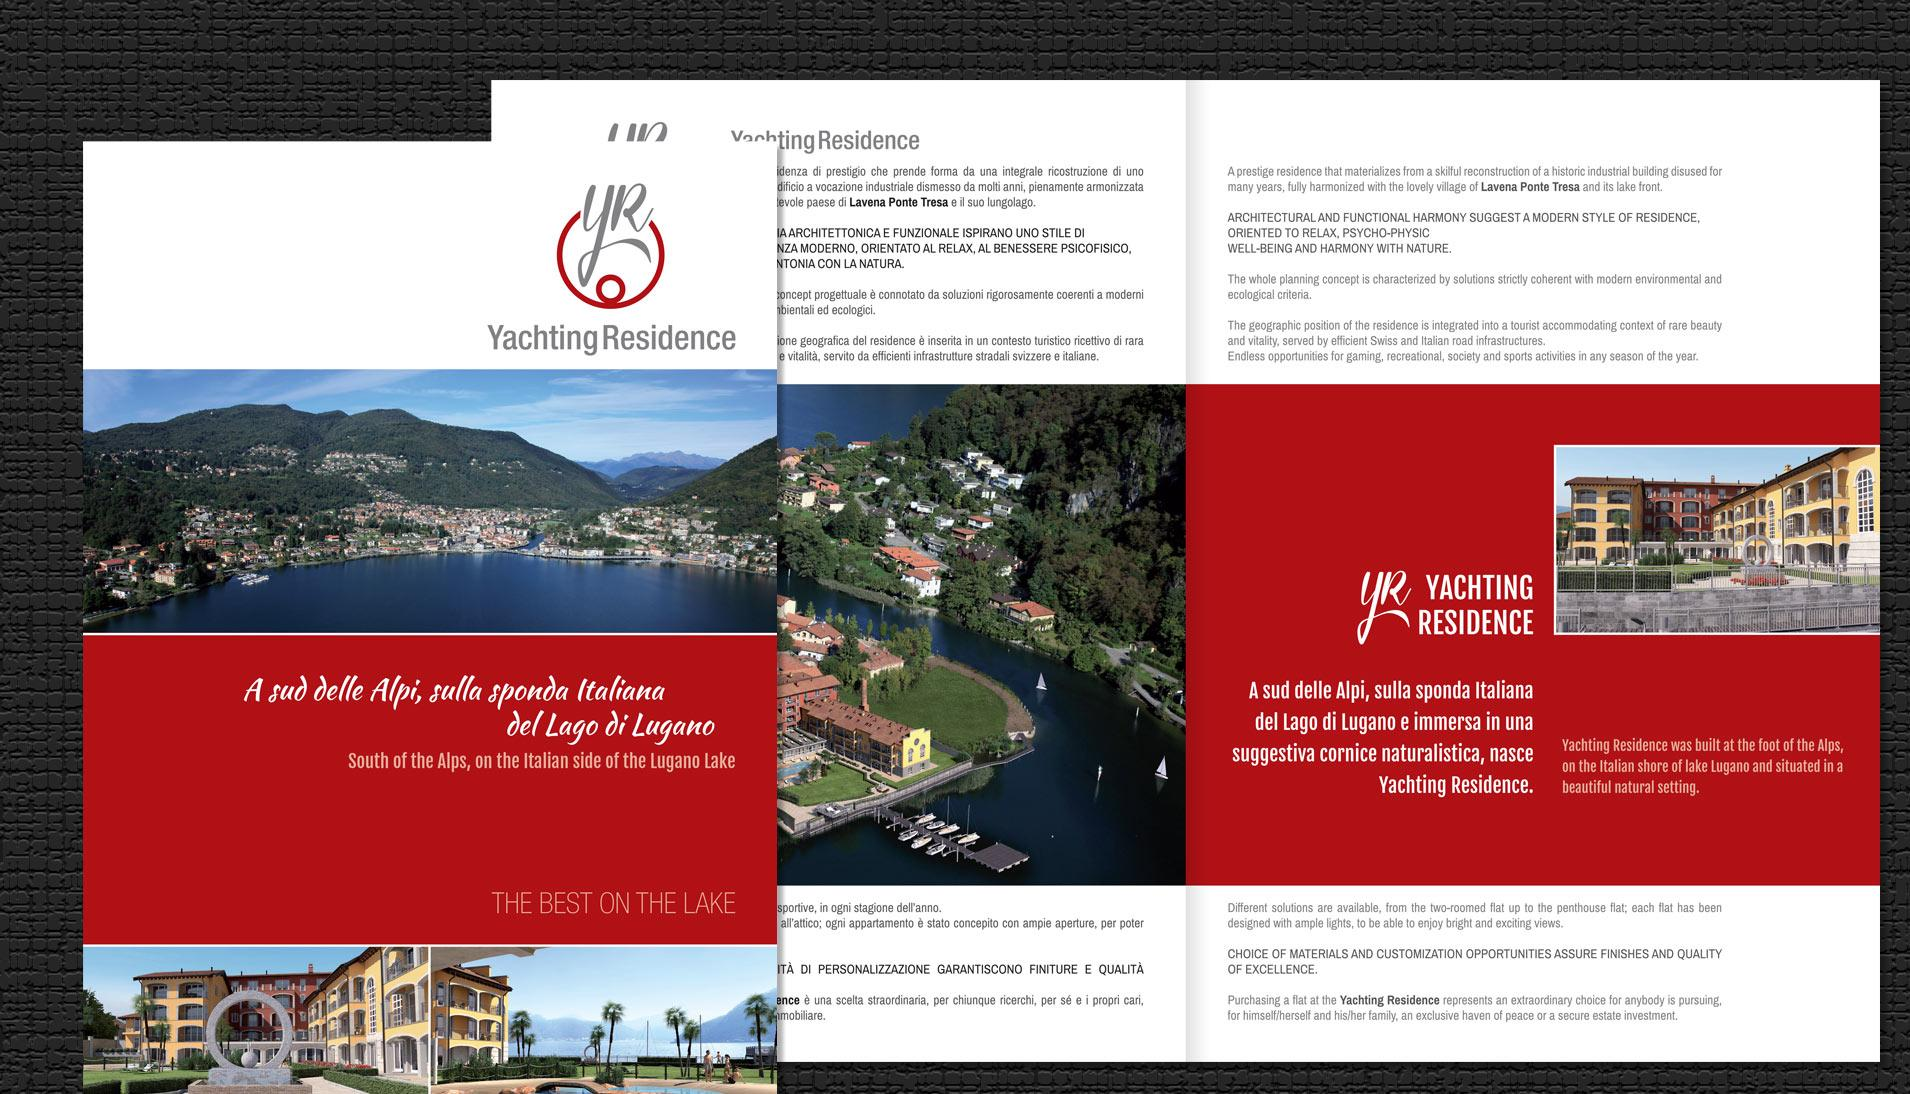 WarningStudioComunicazione yachting residence brochure 01